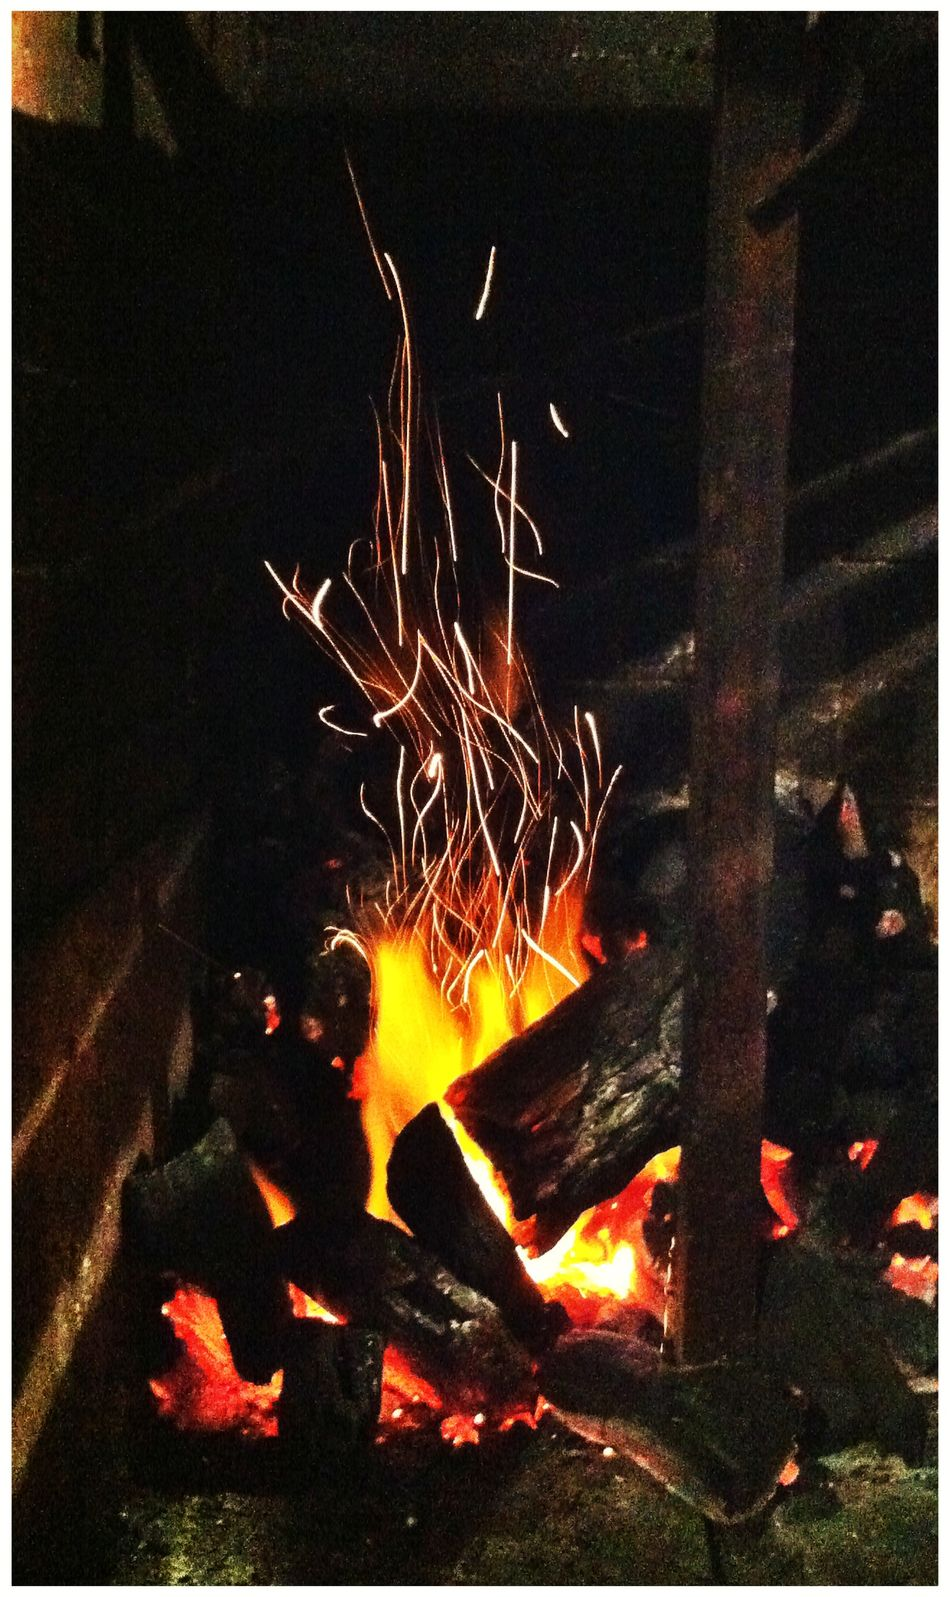 Making Fire Barbecue Barbecue ! Fire ! Making Dinmer Asado Argentino Asadoargentino Asado Asadofamiliar